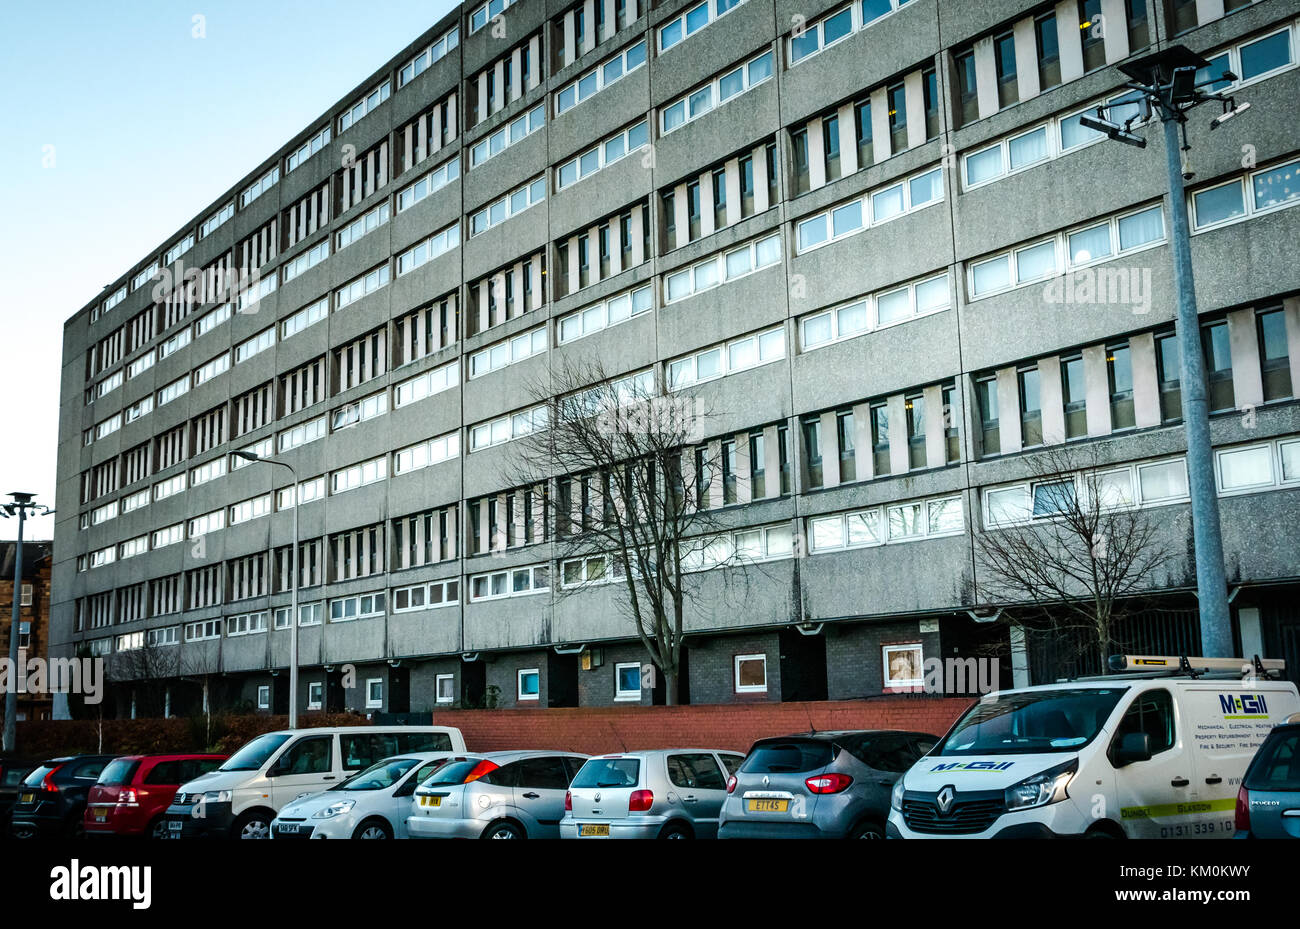 Category A listed Cables Wynd social housing Council block of flats, known as Banana flats, Leith, Edinburgh, Scotland, Stock Photo